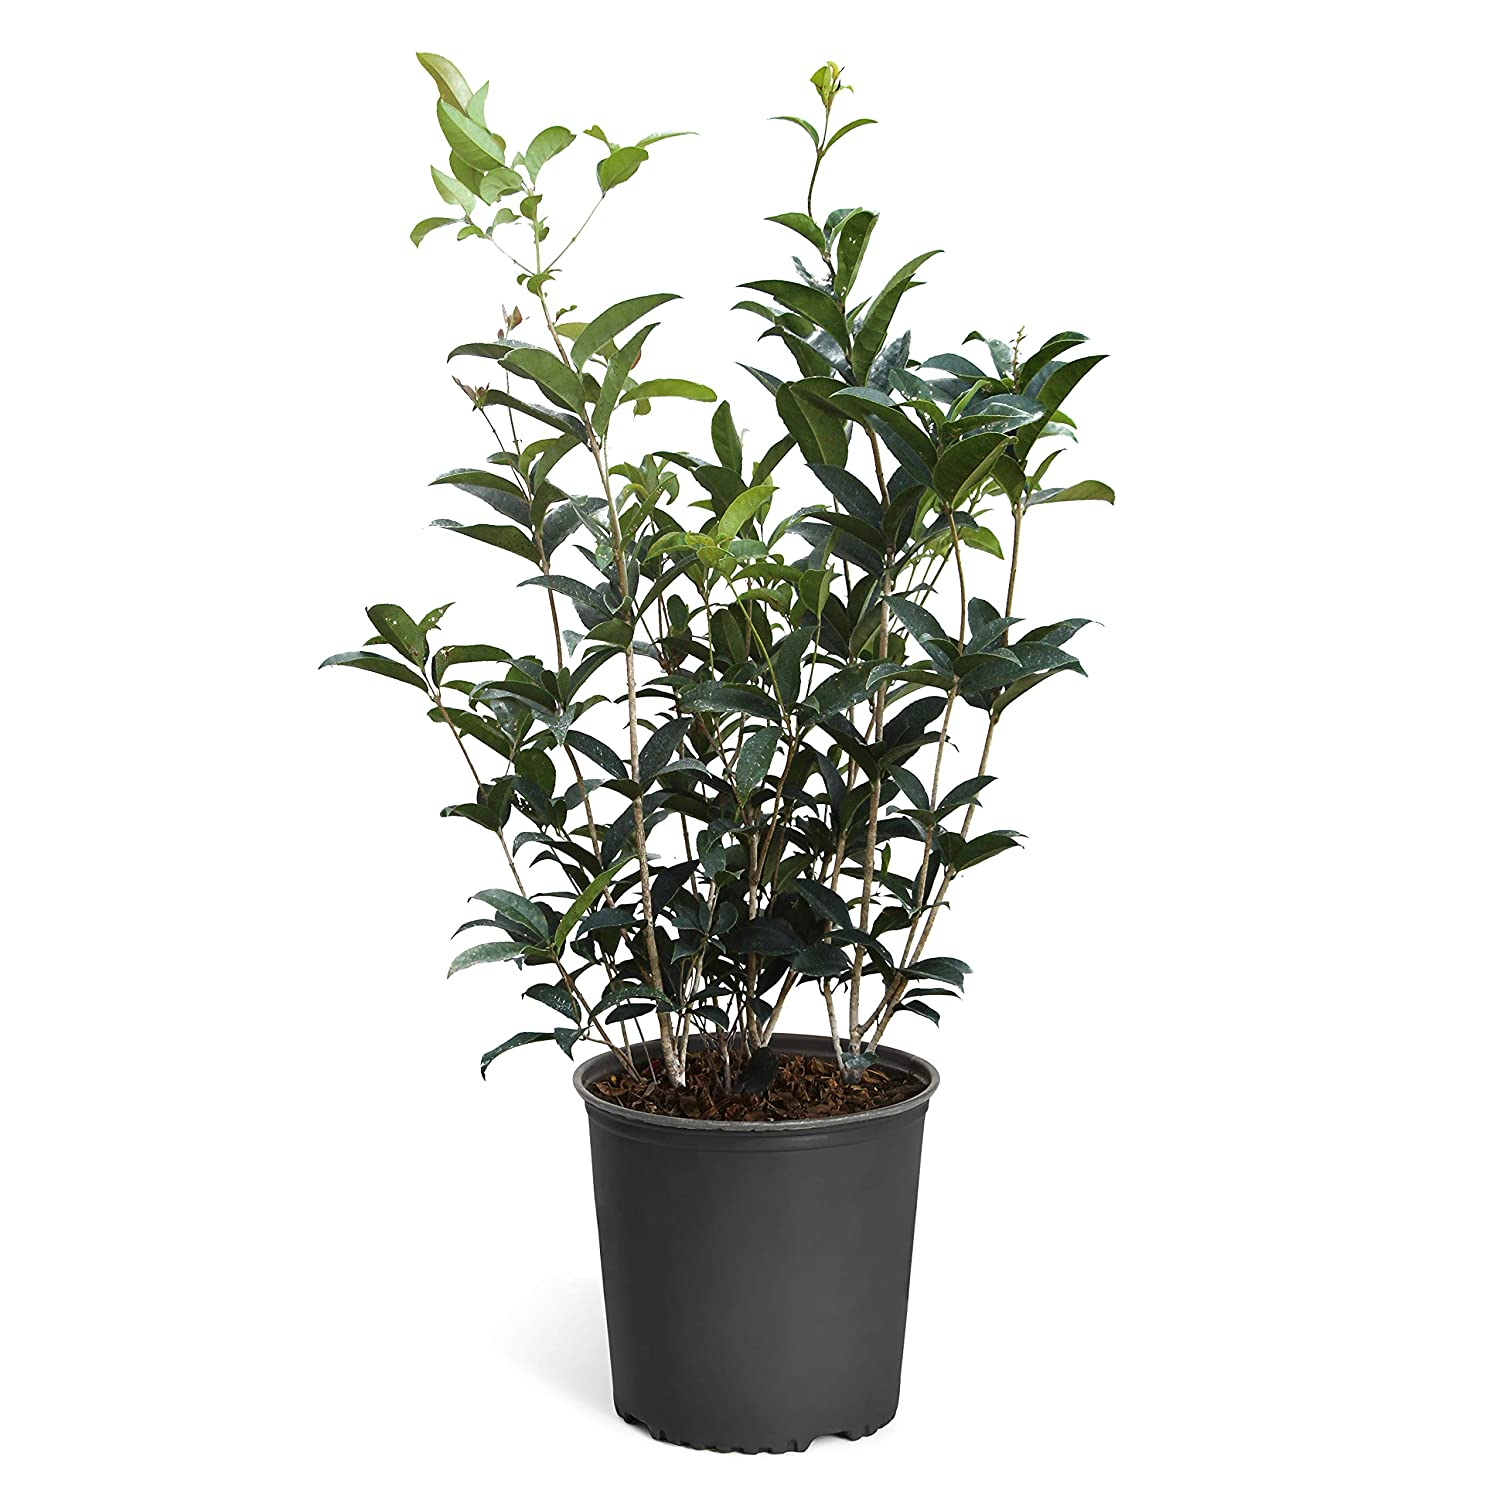 No Shipping to AZ 3 Gallon Fragrant Tea Olive Plants Osmanthus Fragrans The Most Fragrant Blooms!